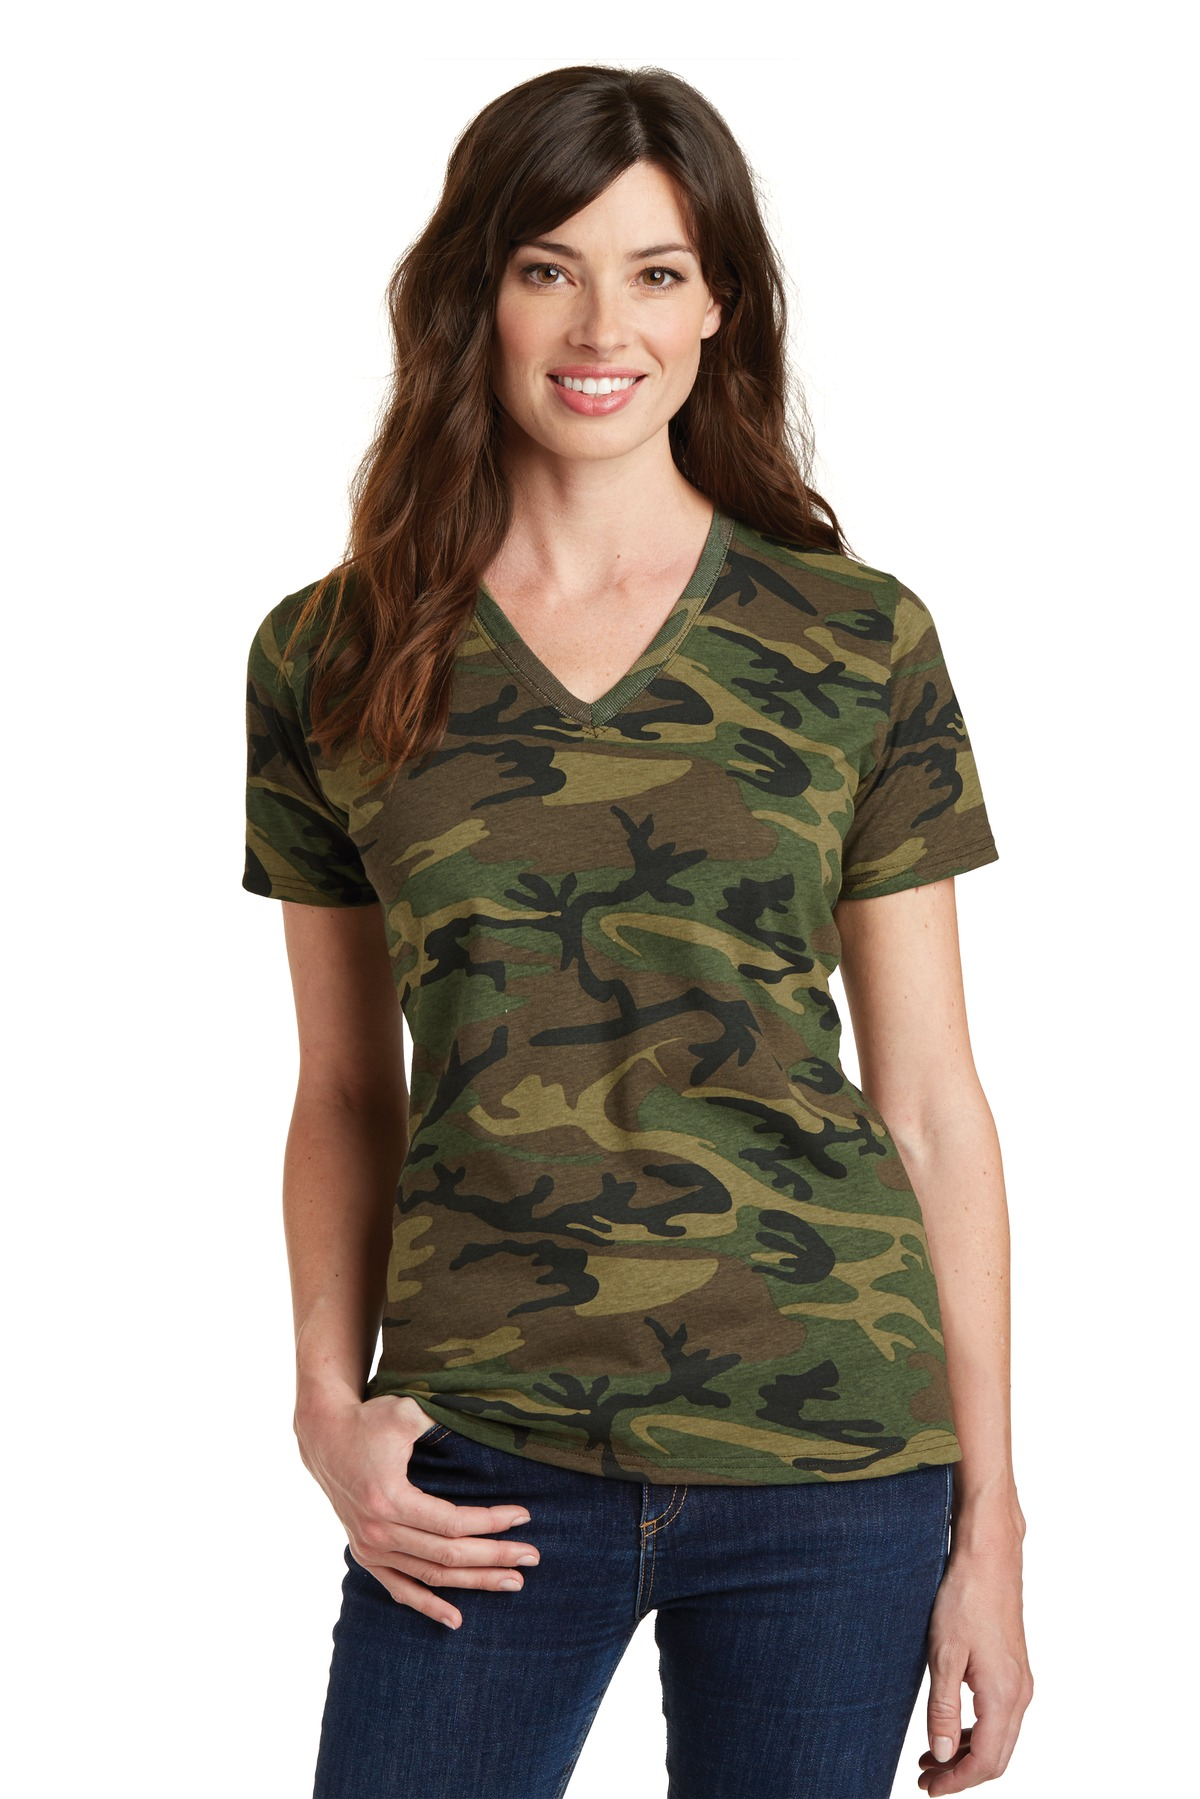 click to view Military Camo